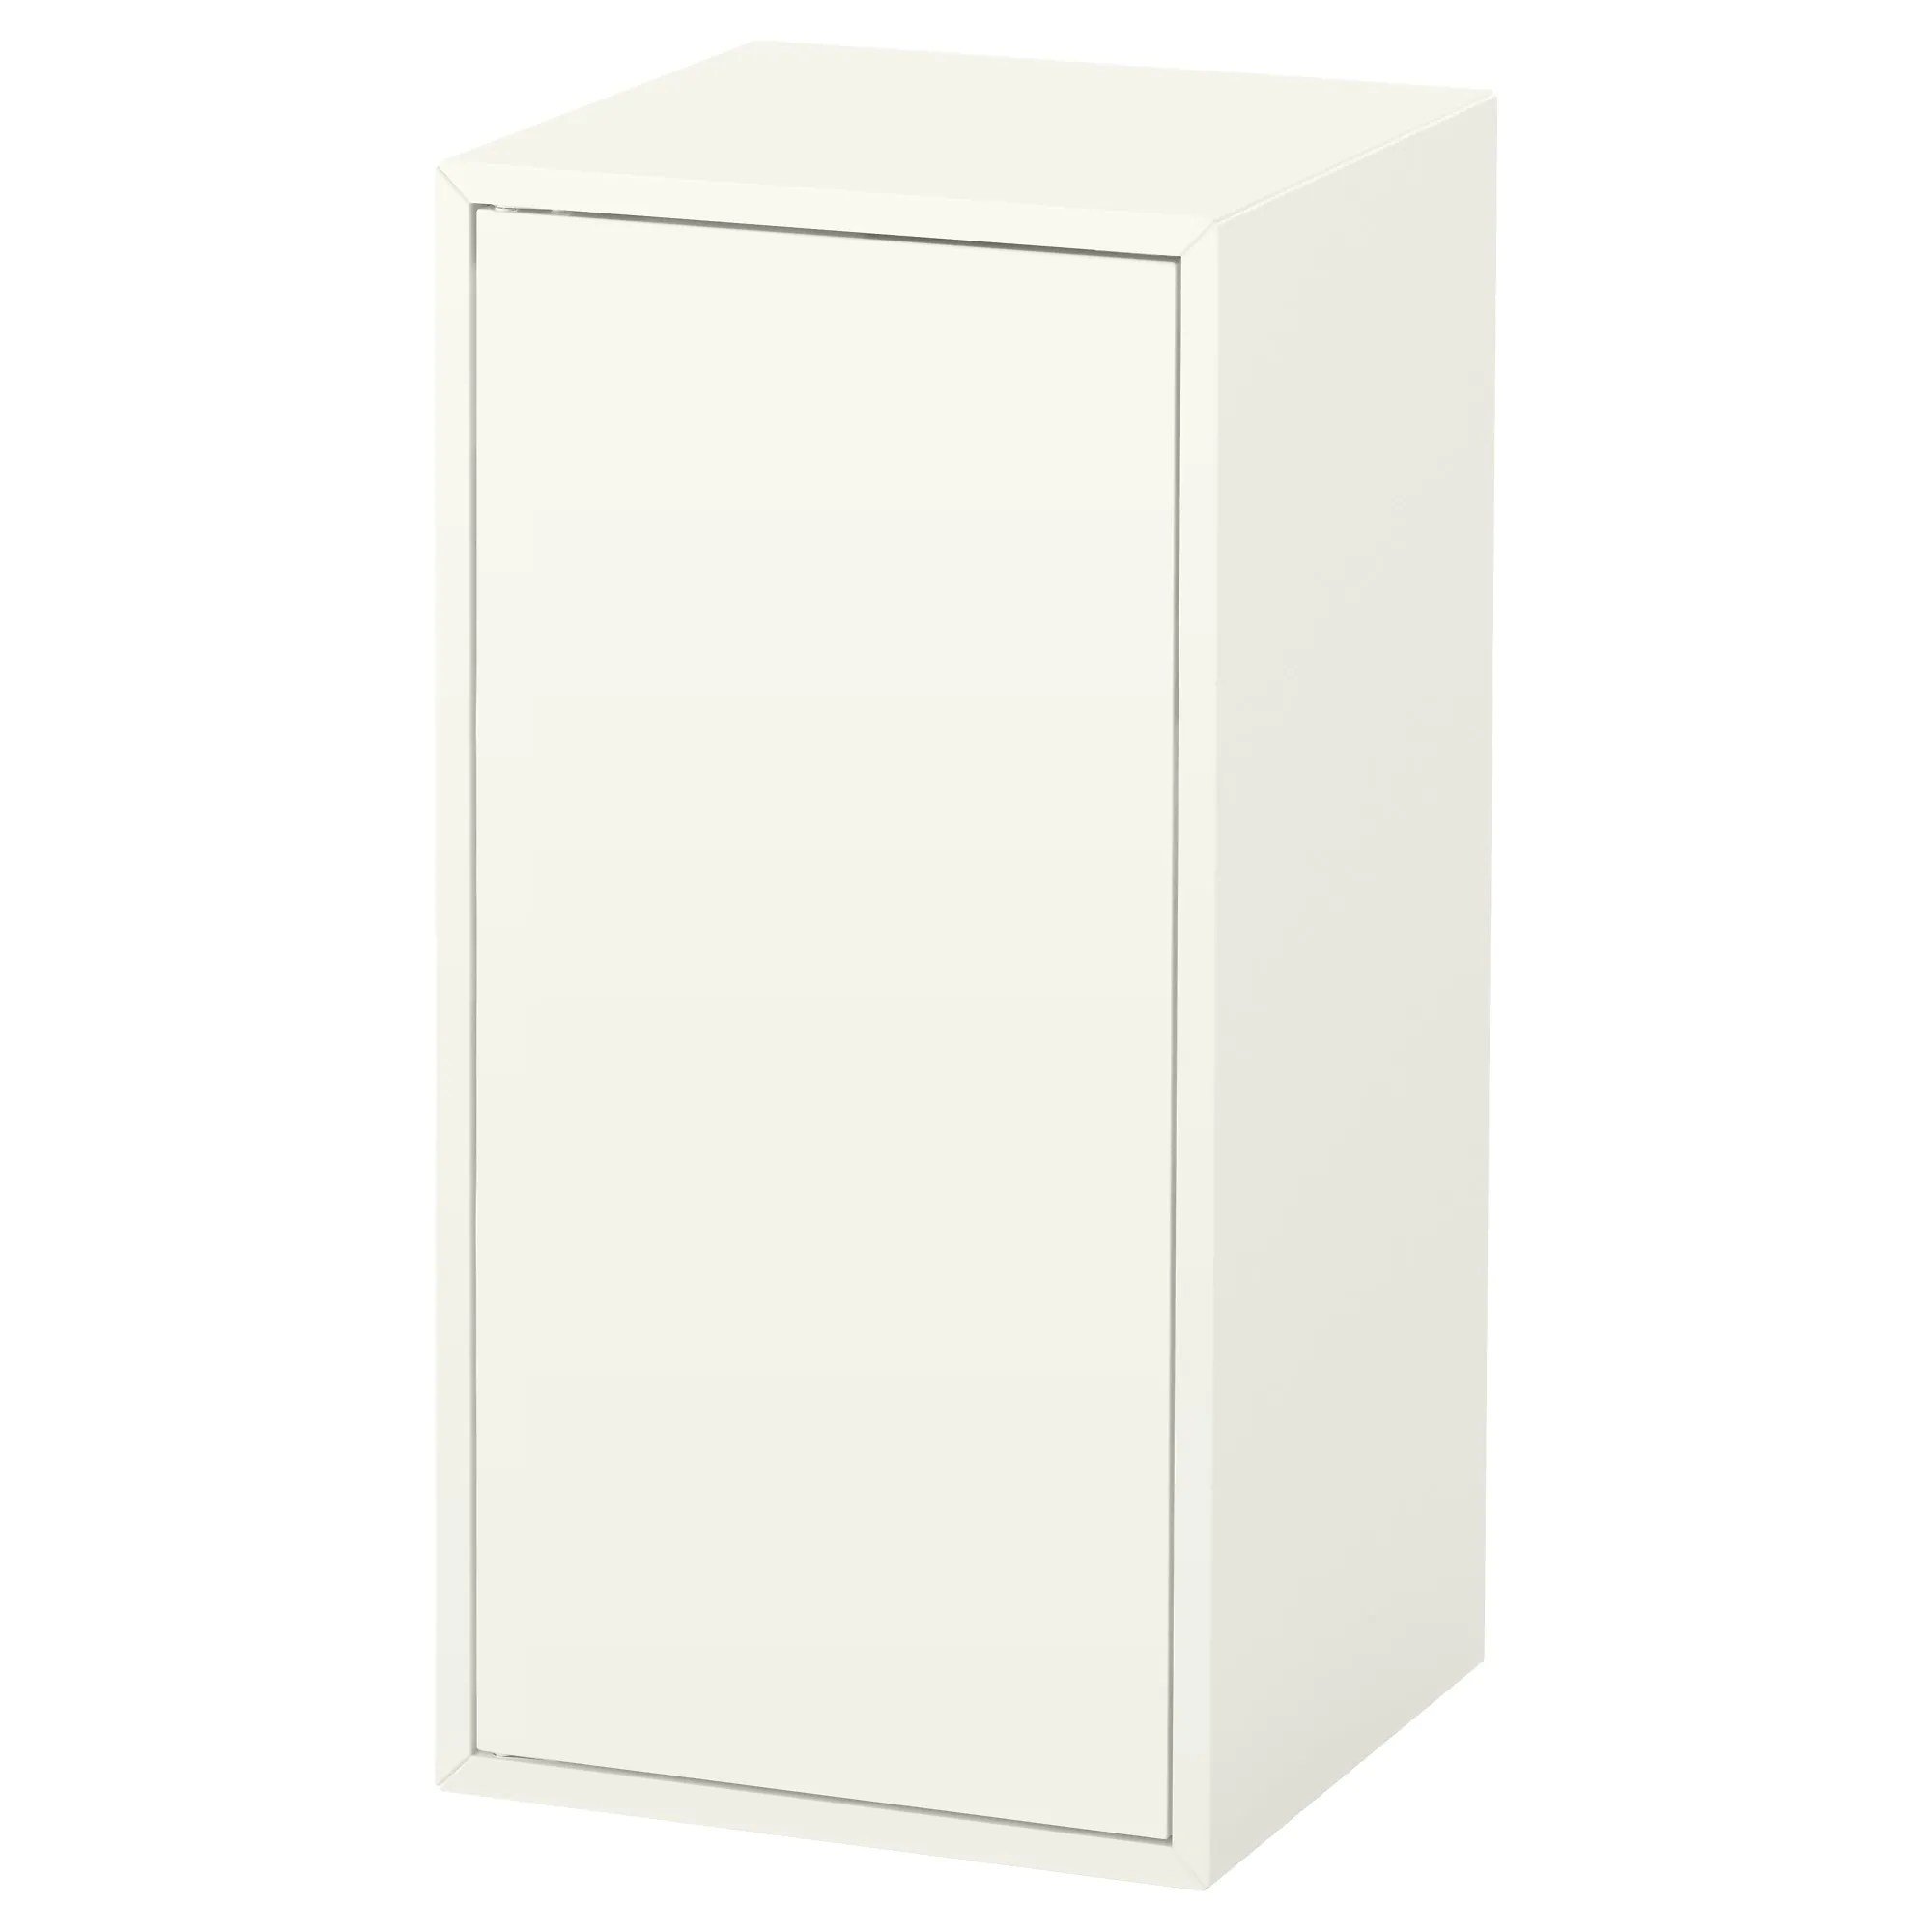 Push To Open Deur Eket Cabinet With Door And Shelf White